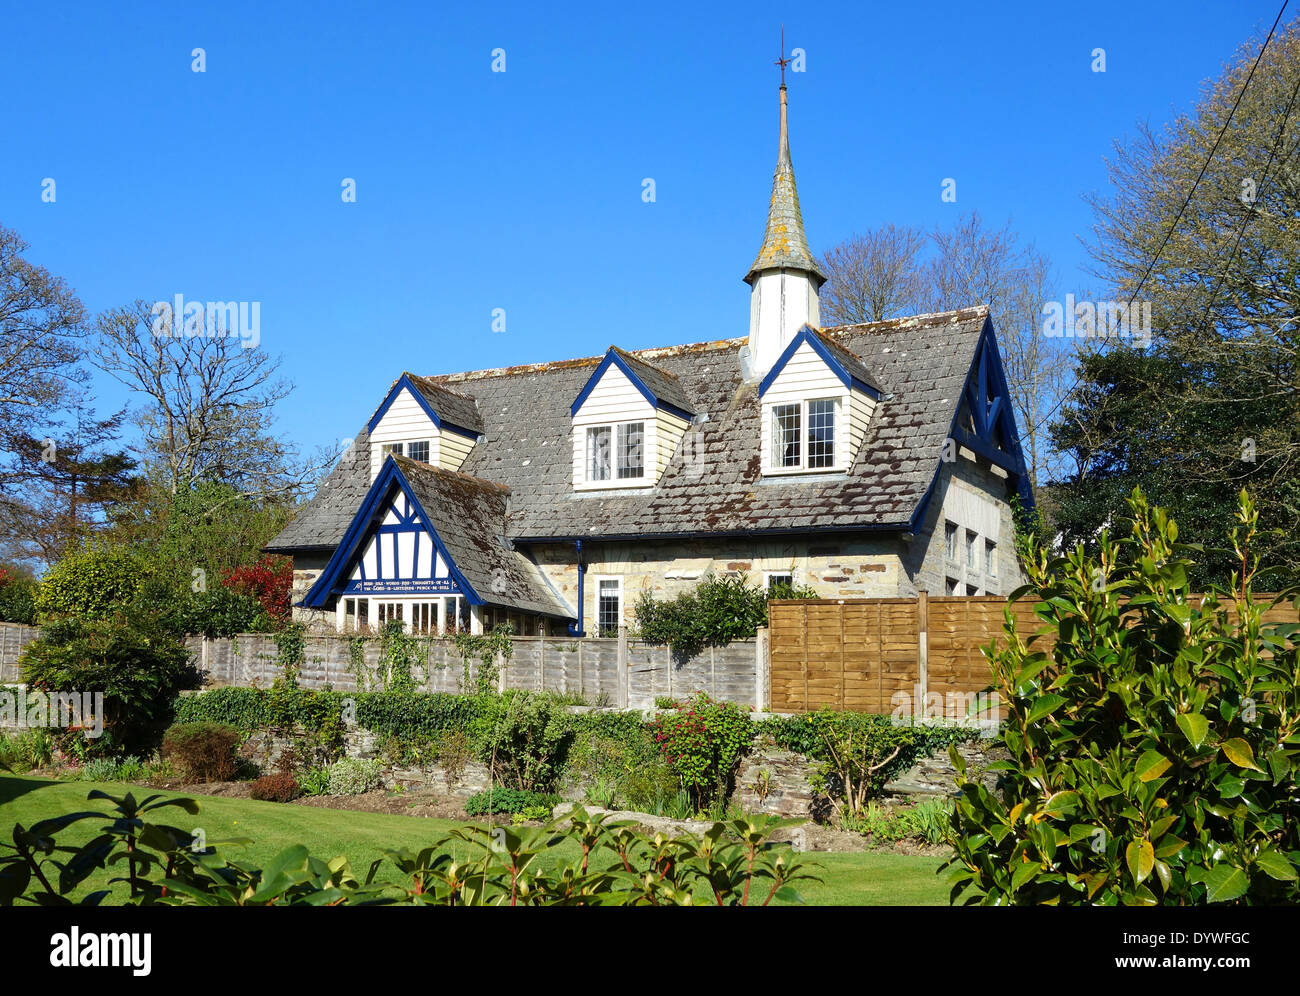 an old chapel converted into a home near truro in cornwall, uk - Stock Image